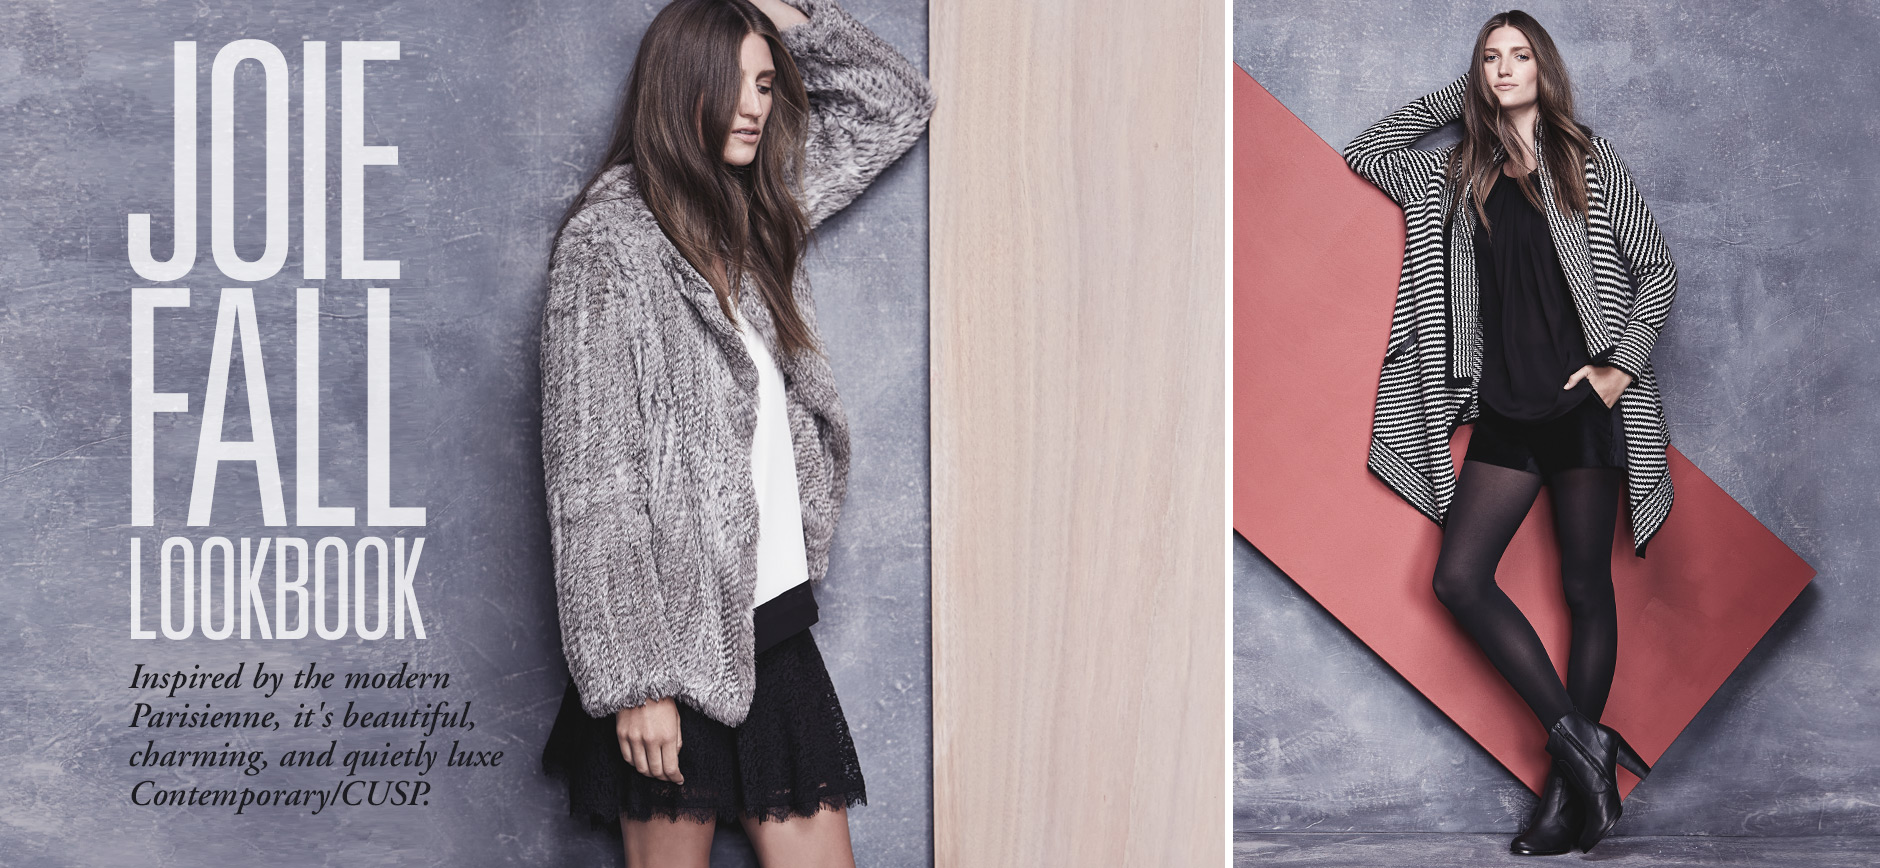 Joie Fall Lookbook